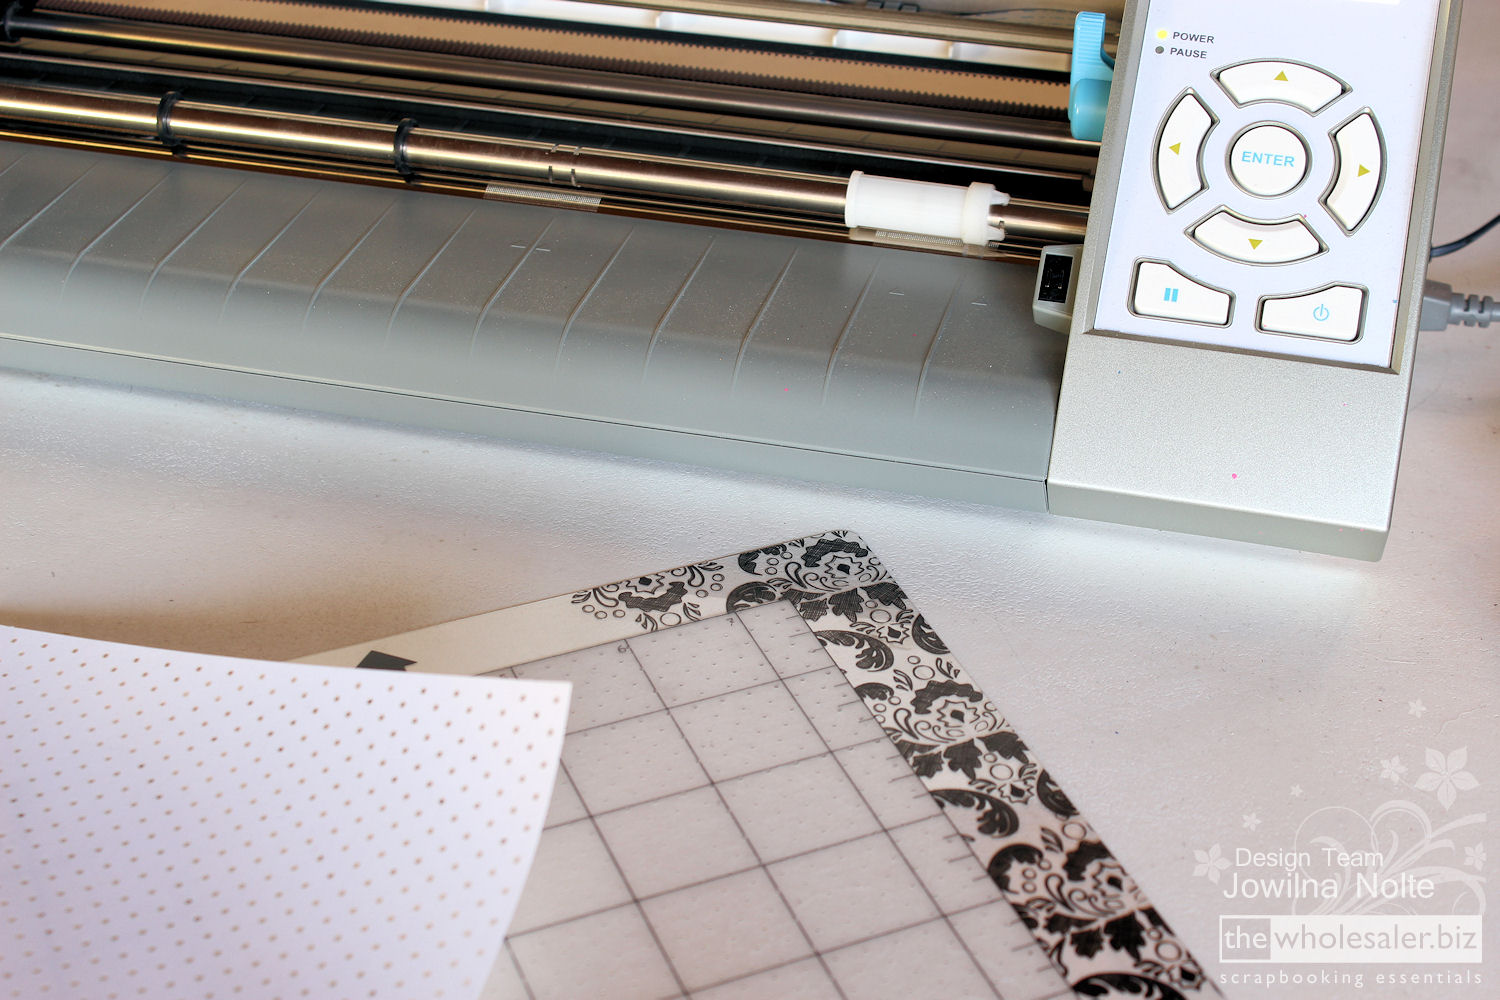 Silhouette Stamp Material - Step 2